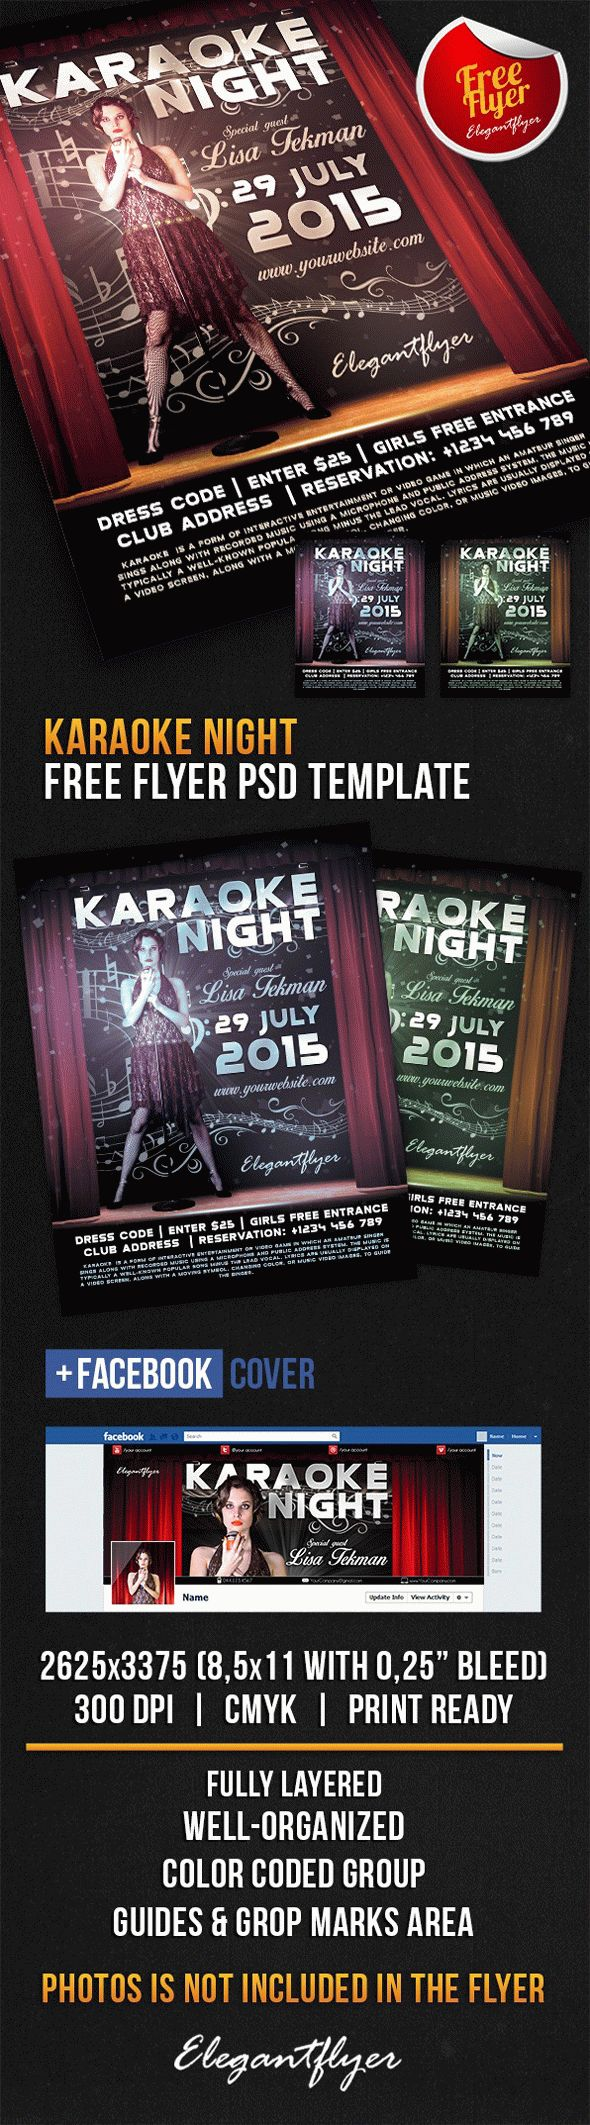 Karaoke Night – Free Flyer PSD Template + Facebook Cover